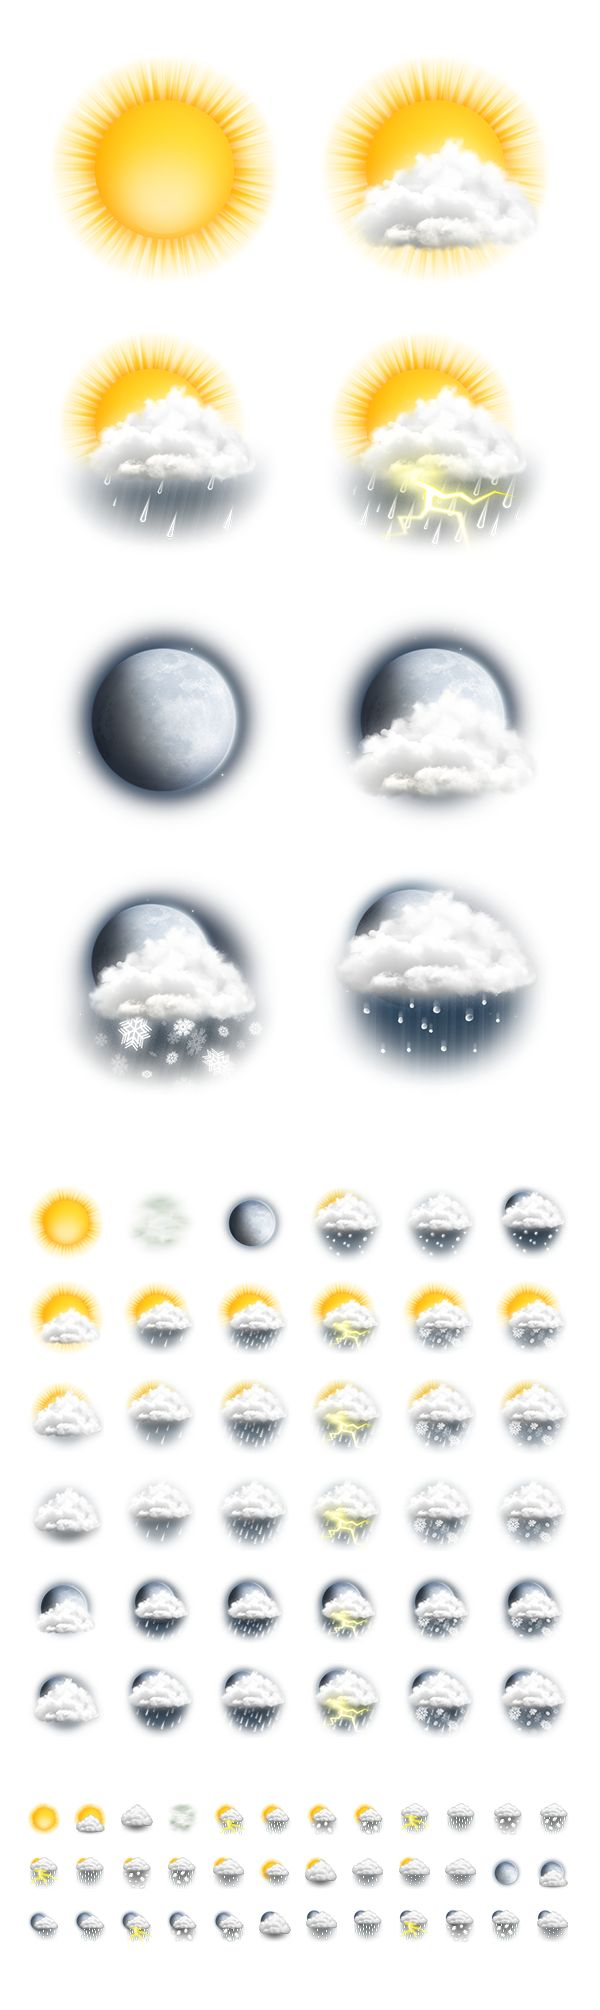 Weather icons, sun, clouds, moon, rain, snow and lightning illustration